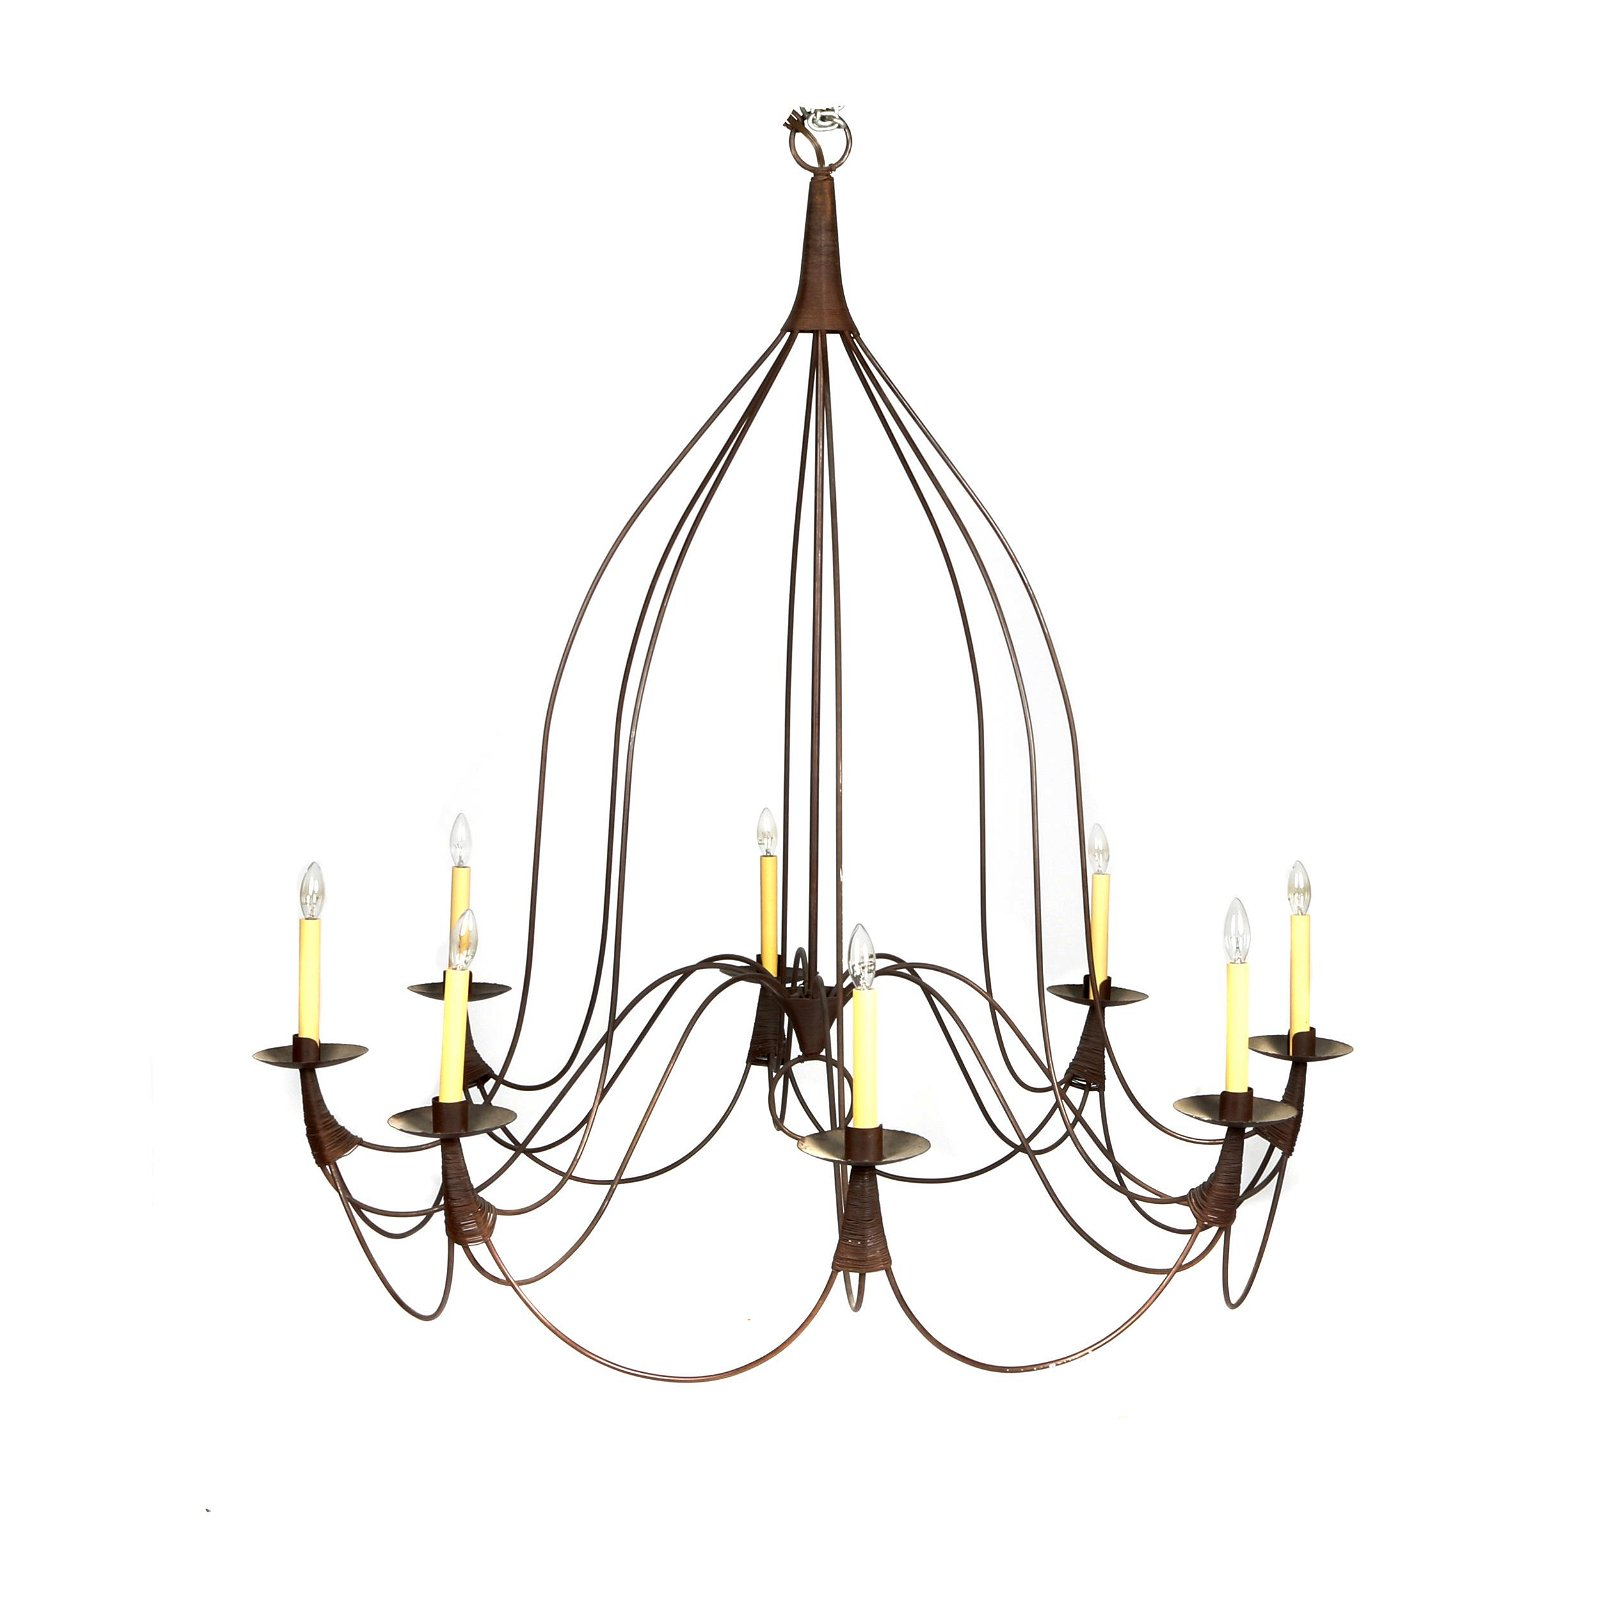 COUNTRY FRENCH WROUGHT IRON TOLE CHANDELIER LIGHTING WITH